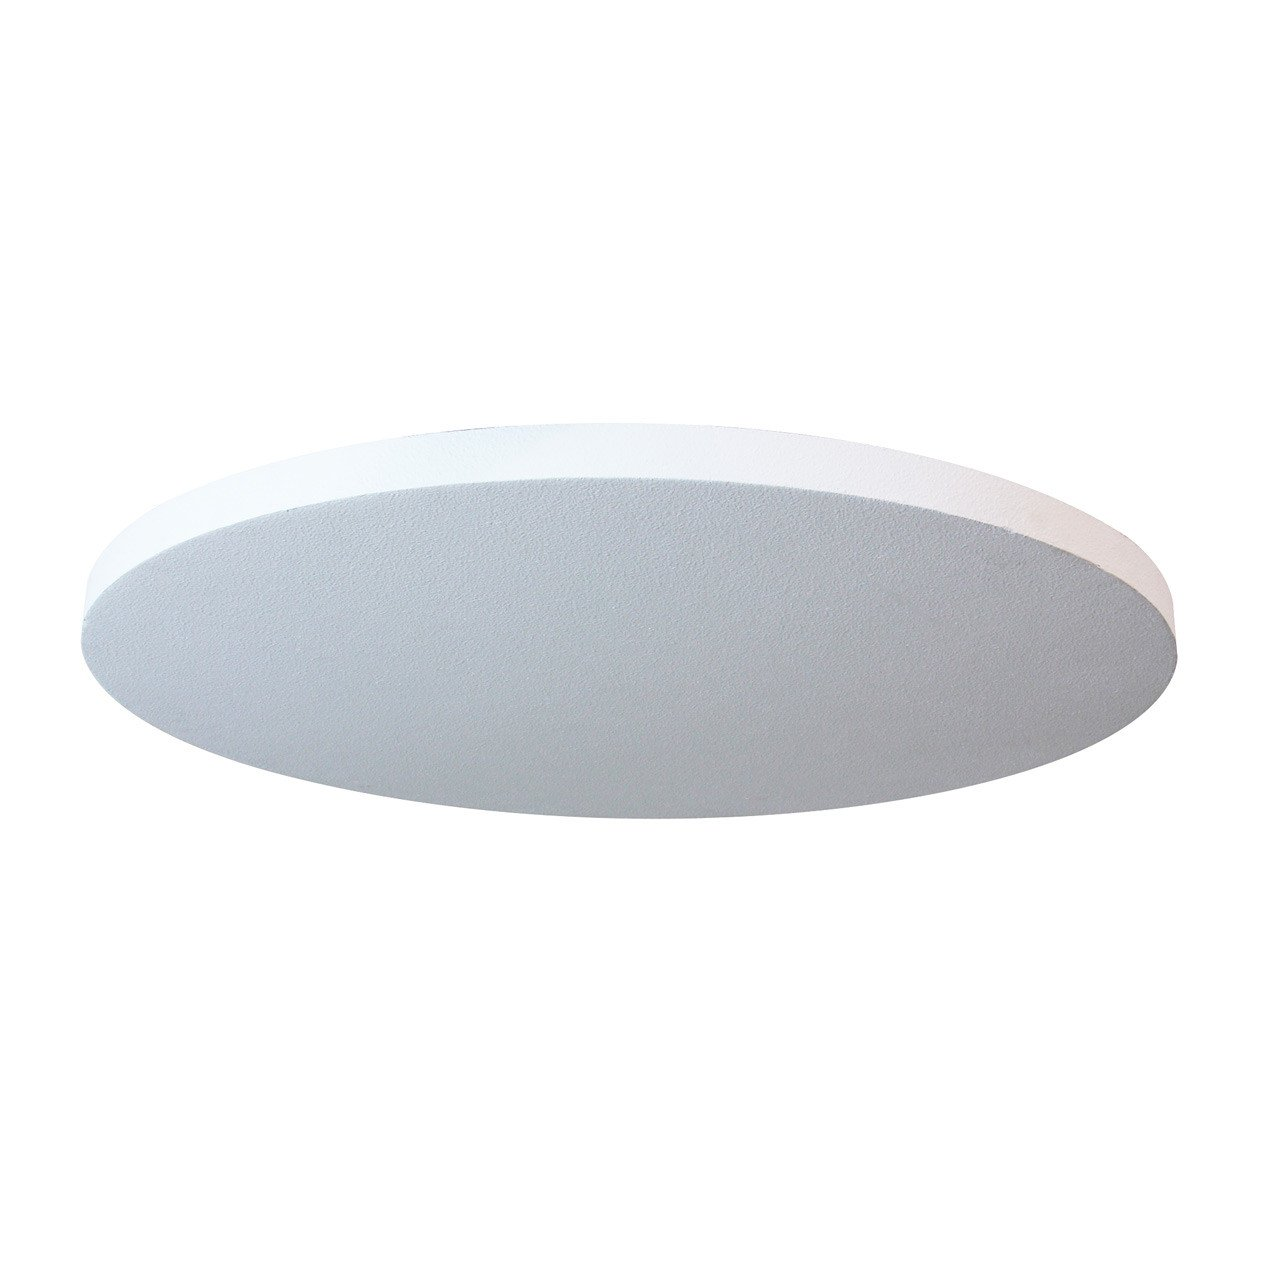 Ceiling Treatments - Primacoustic Cirrus 48 - Ceiling Acoustic Panel (1219 X 1219 X 38mm)